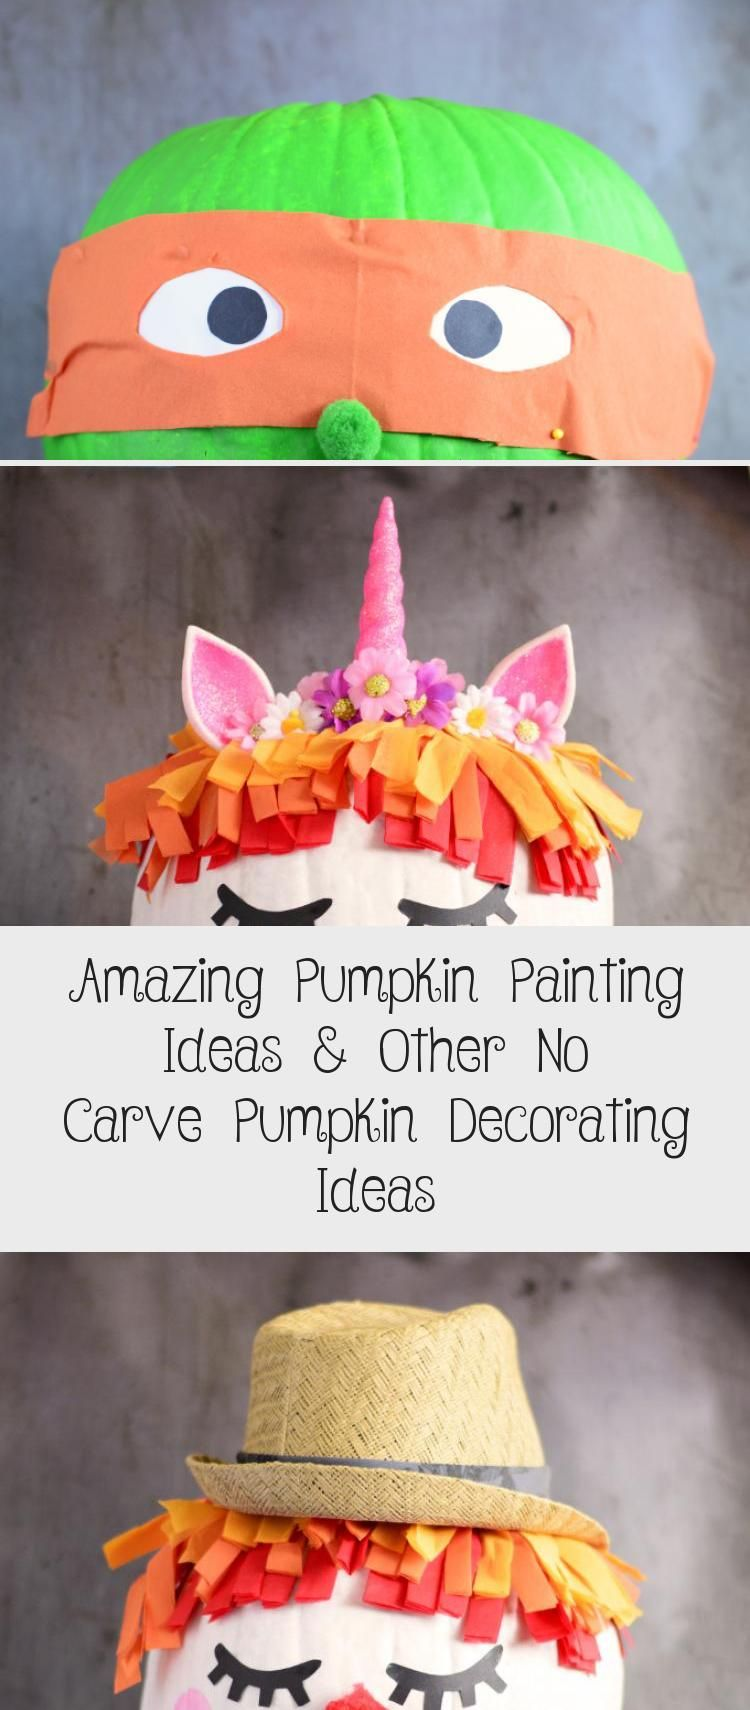 Amazing Pumpkin Painting Ideas & Other No Carve Pumpkin Decorating Ideas #paintingideasYellow #paintingideasArt #paintingideasTutorials #Glasspaintingideas #paintingideasSpace #pumpkinpaintingideas